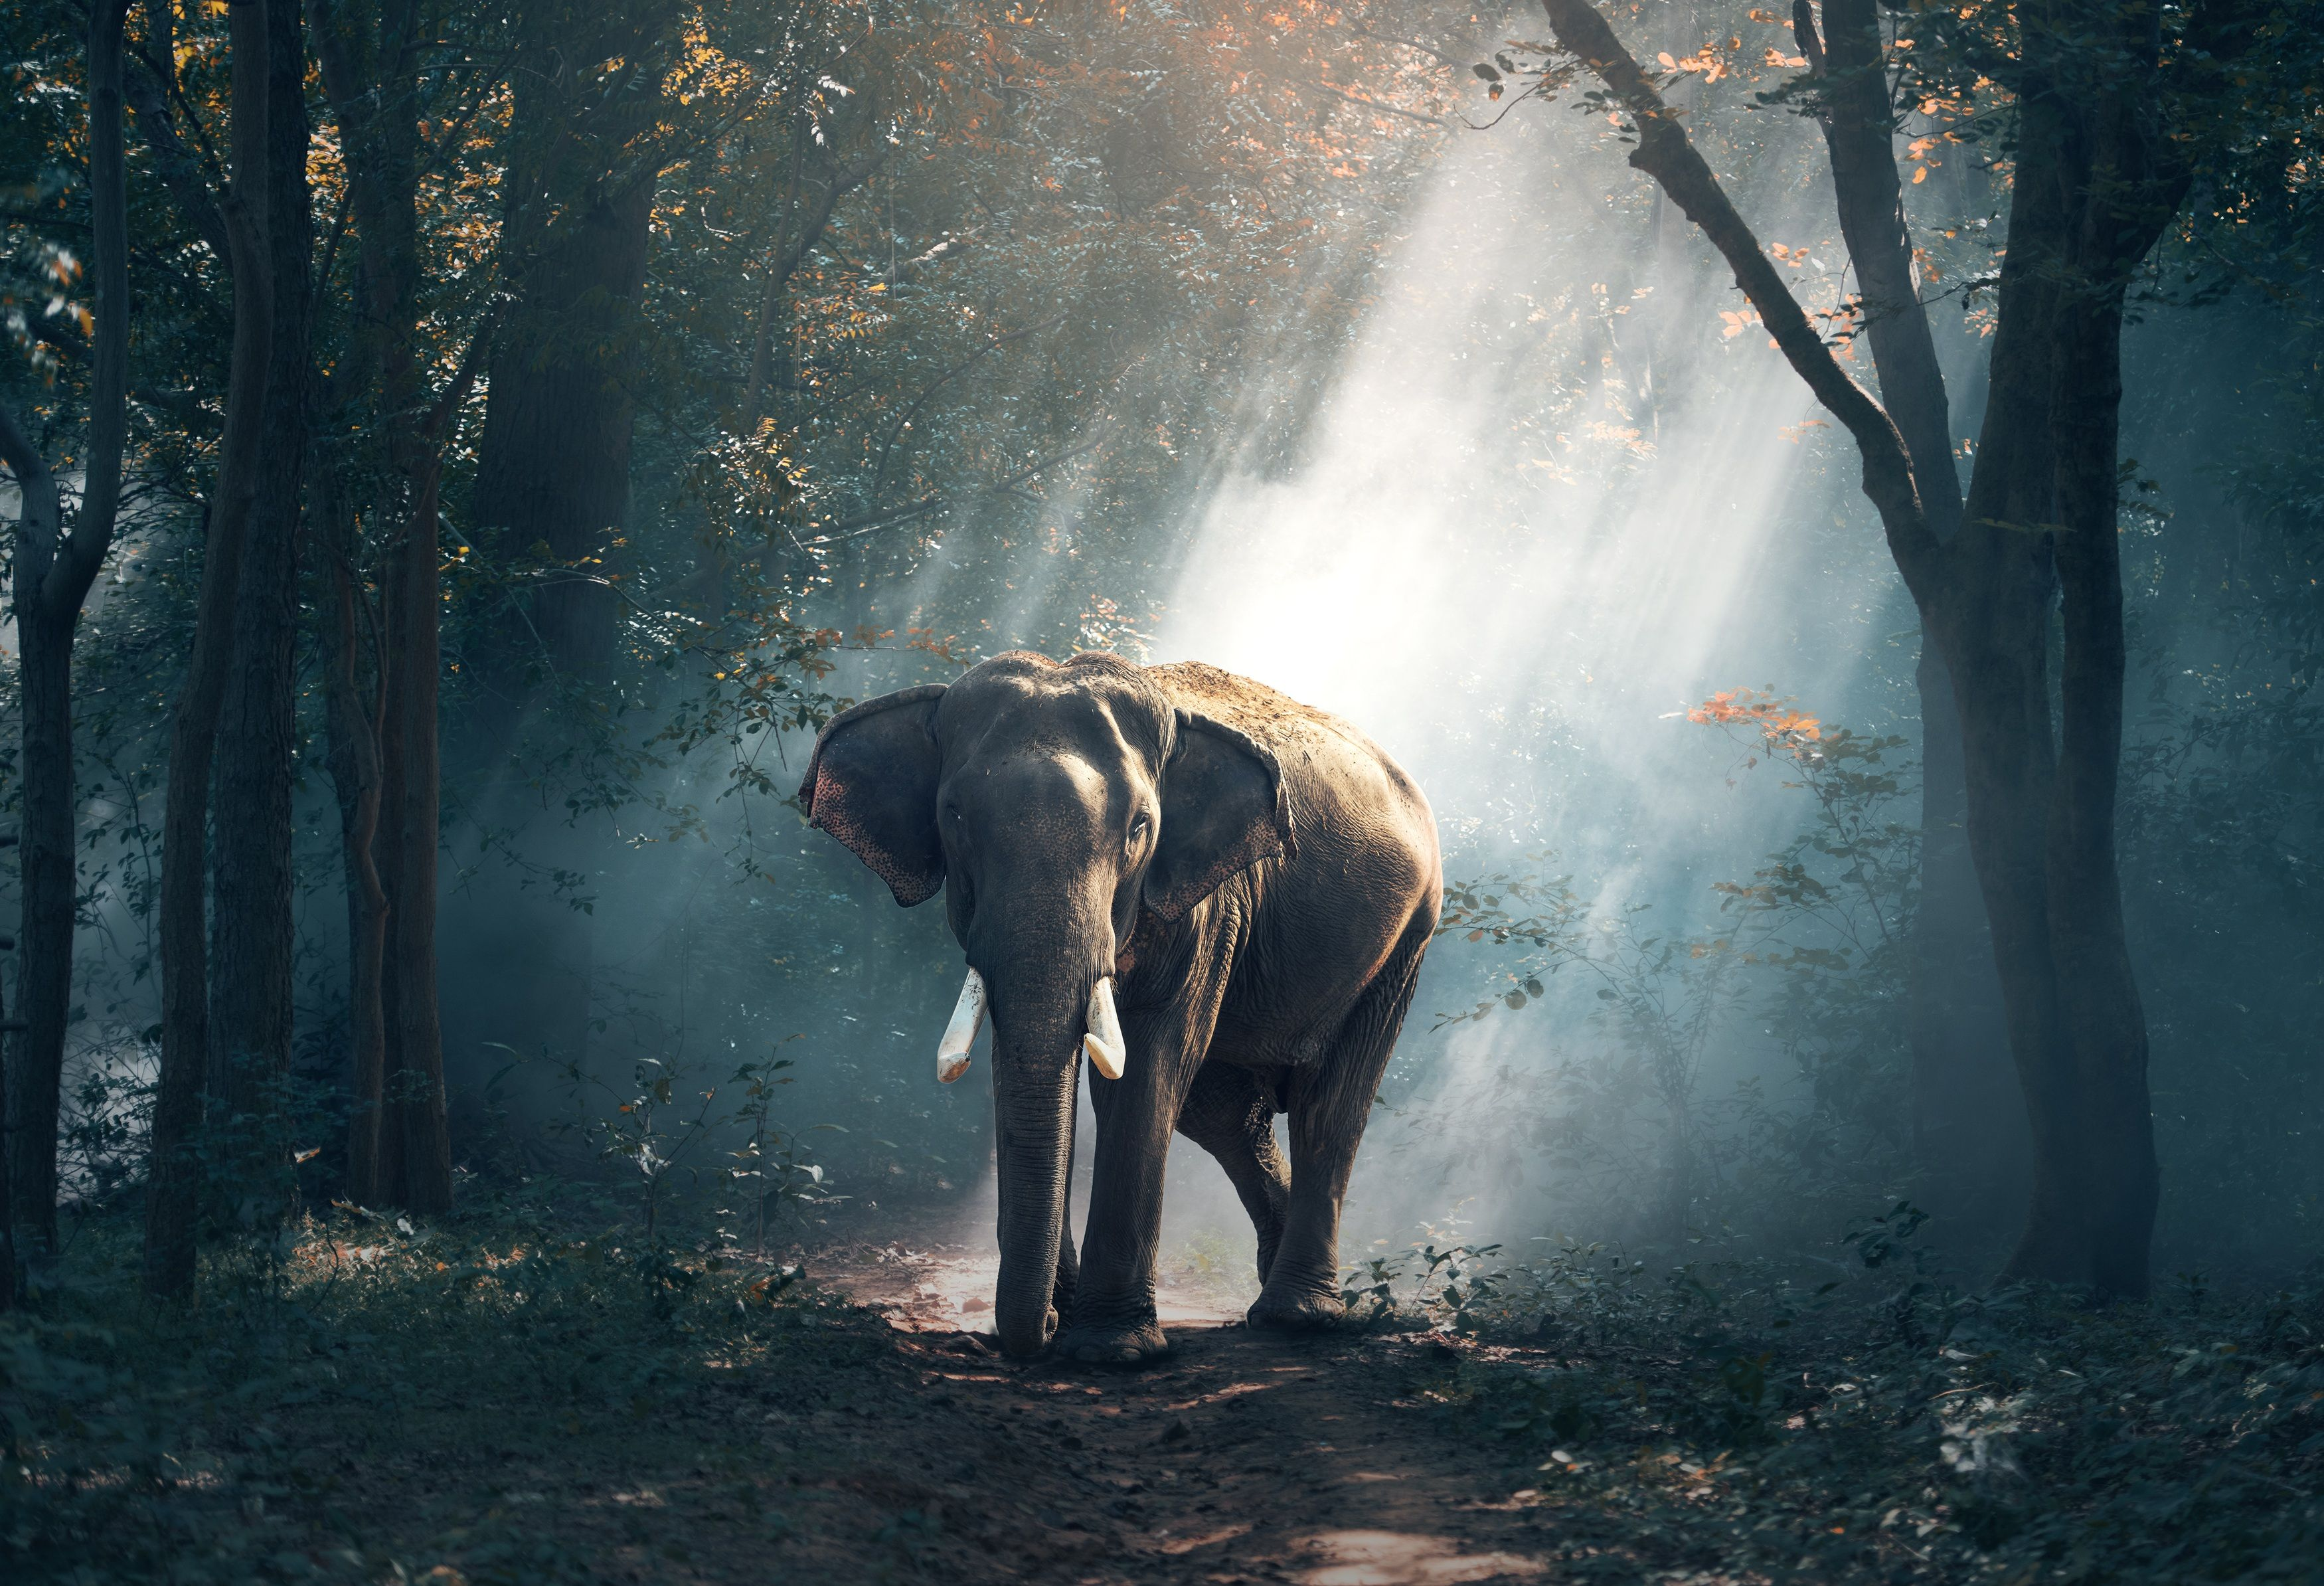 35 Elephant Wallpapers   Download at WallpaperBro 3500x2388